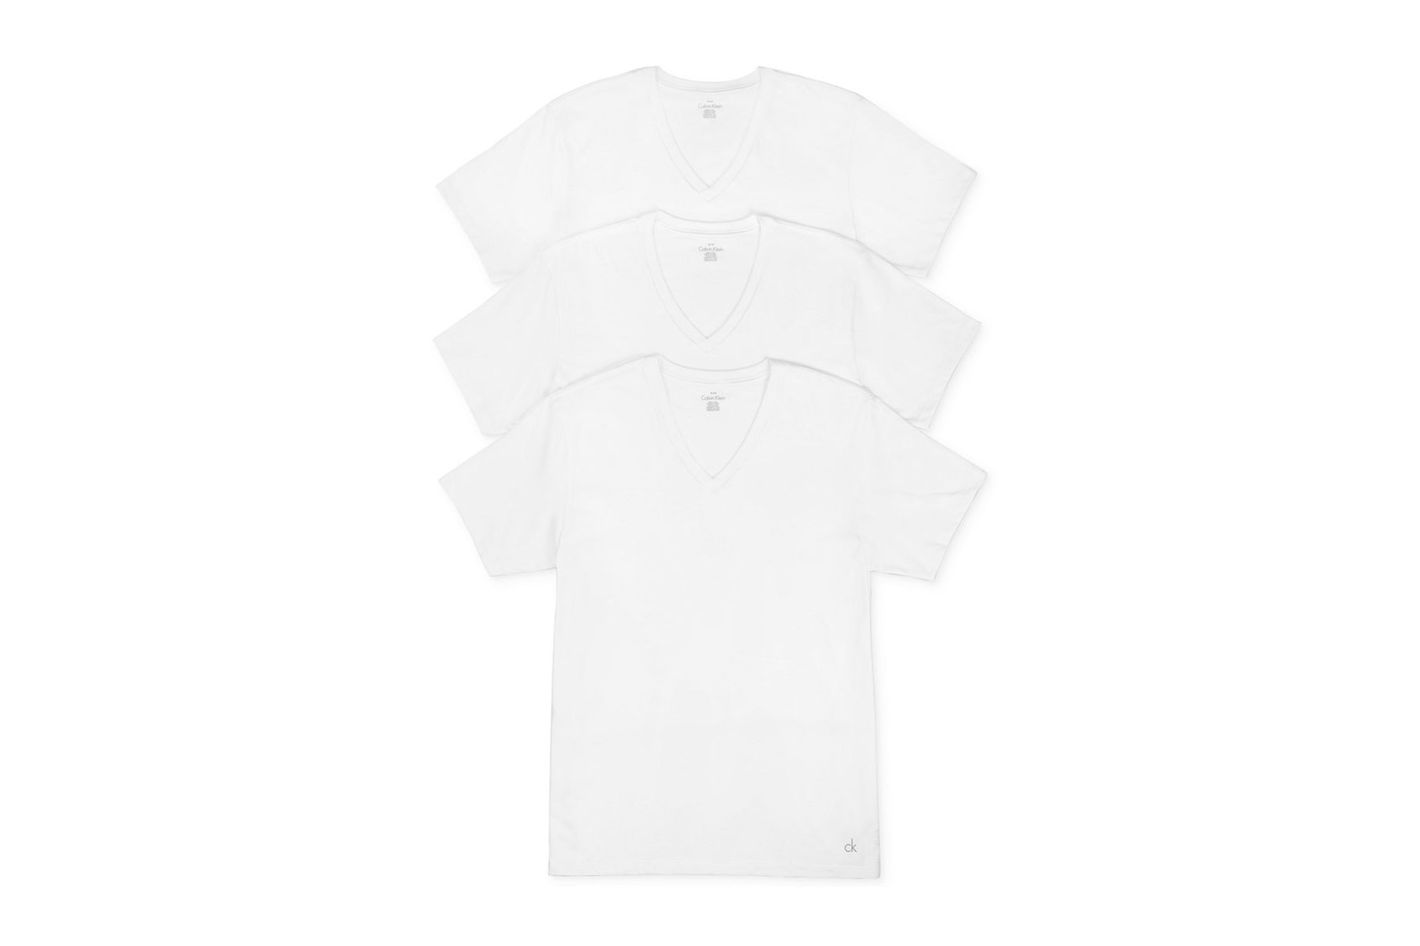 Black t shirt v shape -  There Will Always Be Something So Satisfying About The Clingy Cheap Calvin Klein V Neck White T Shirts My Mom Used To Get Me In Three Packs From Costco